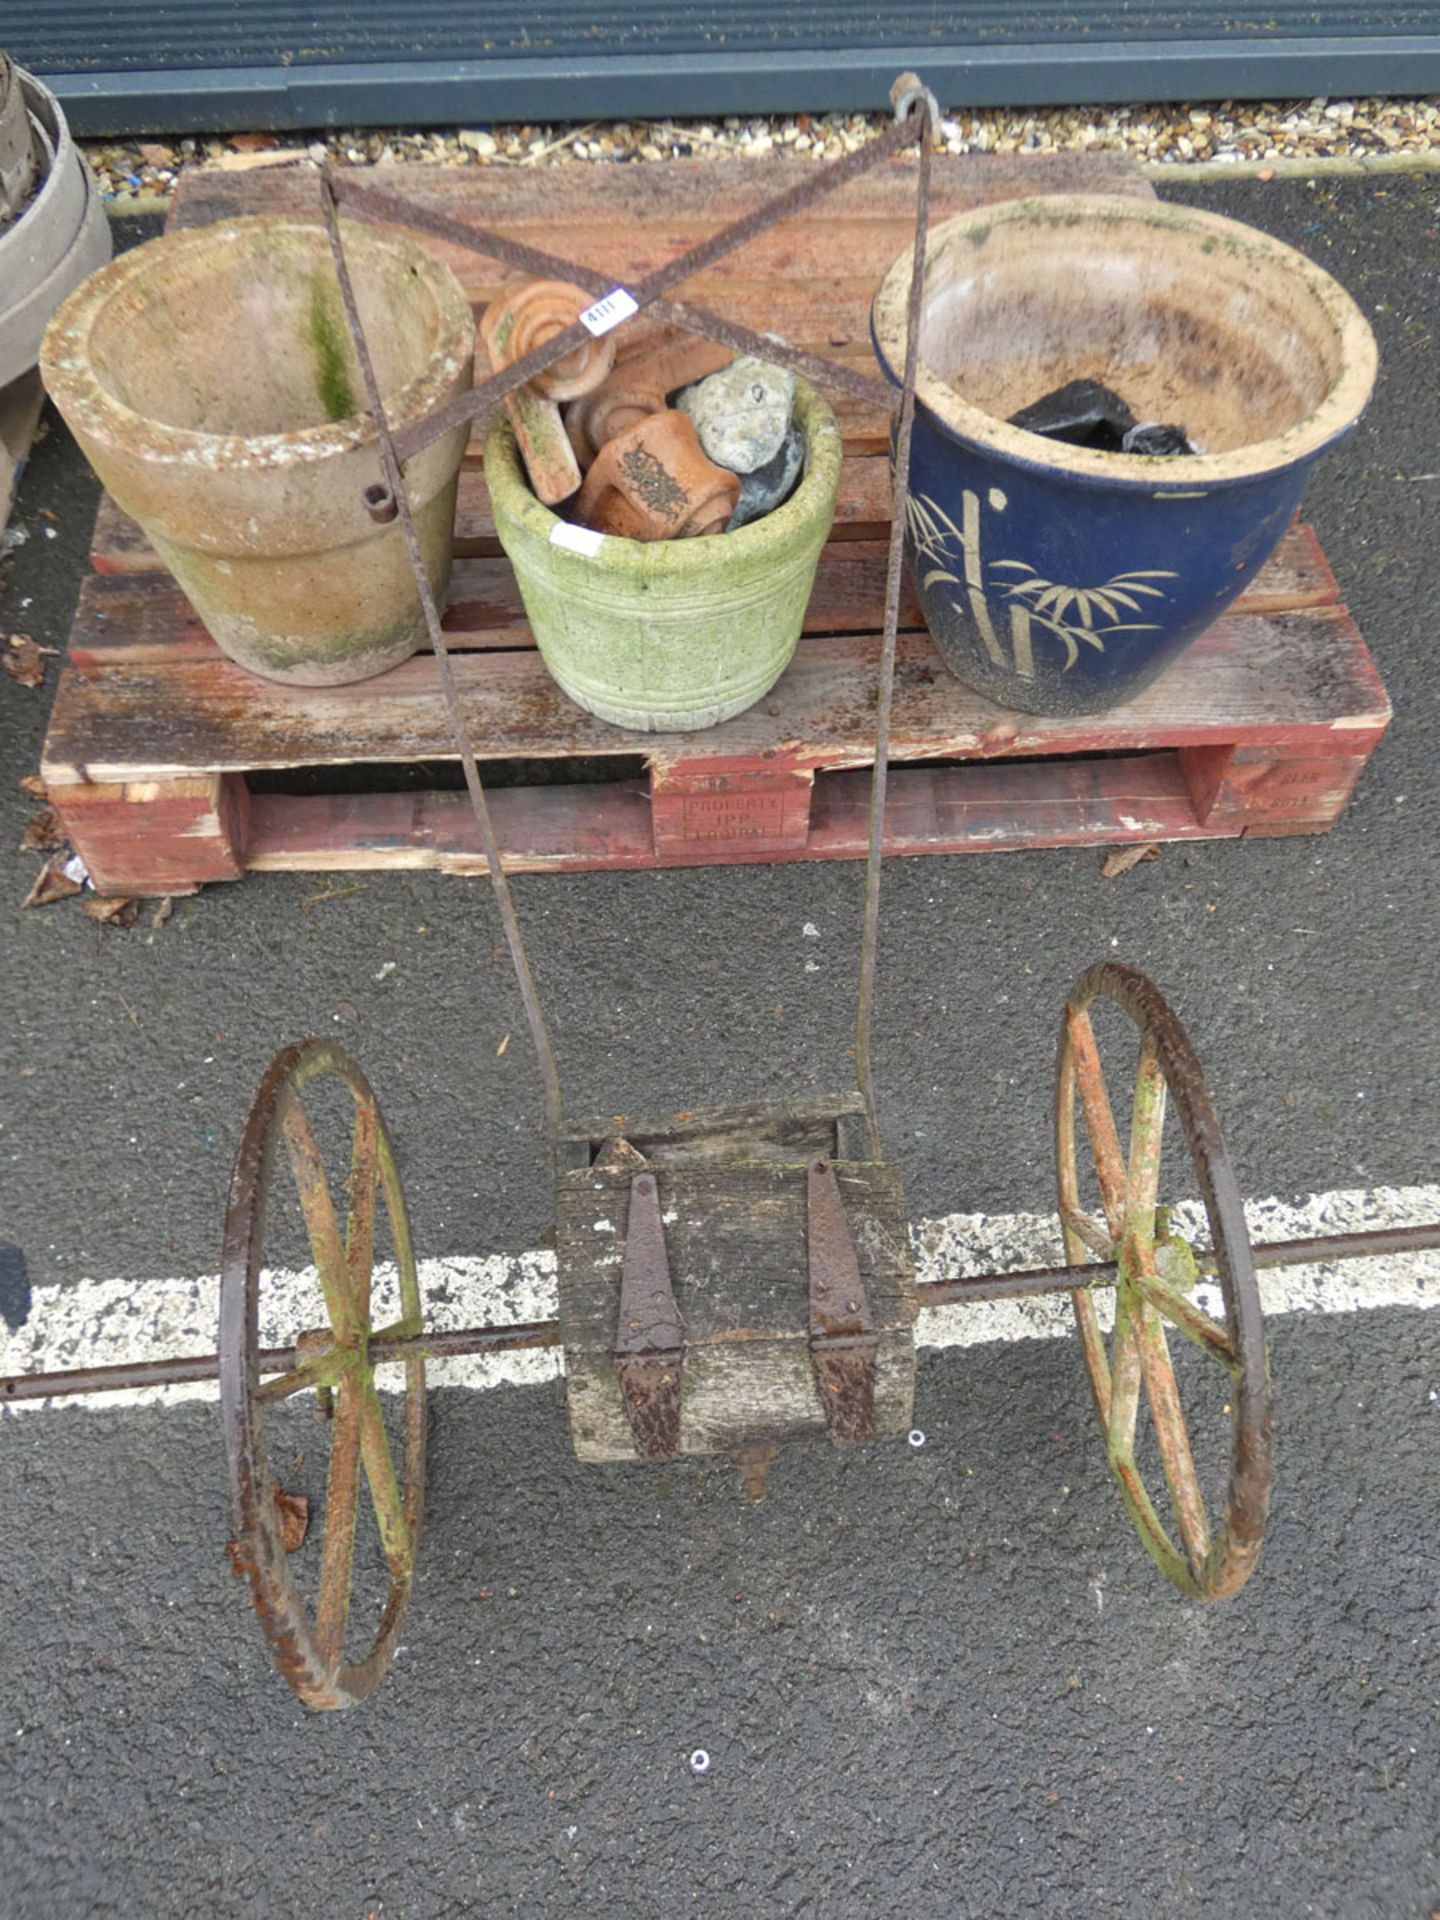 3 pots and a vintage seed spreader